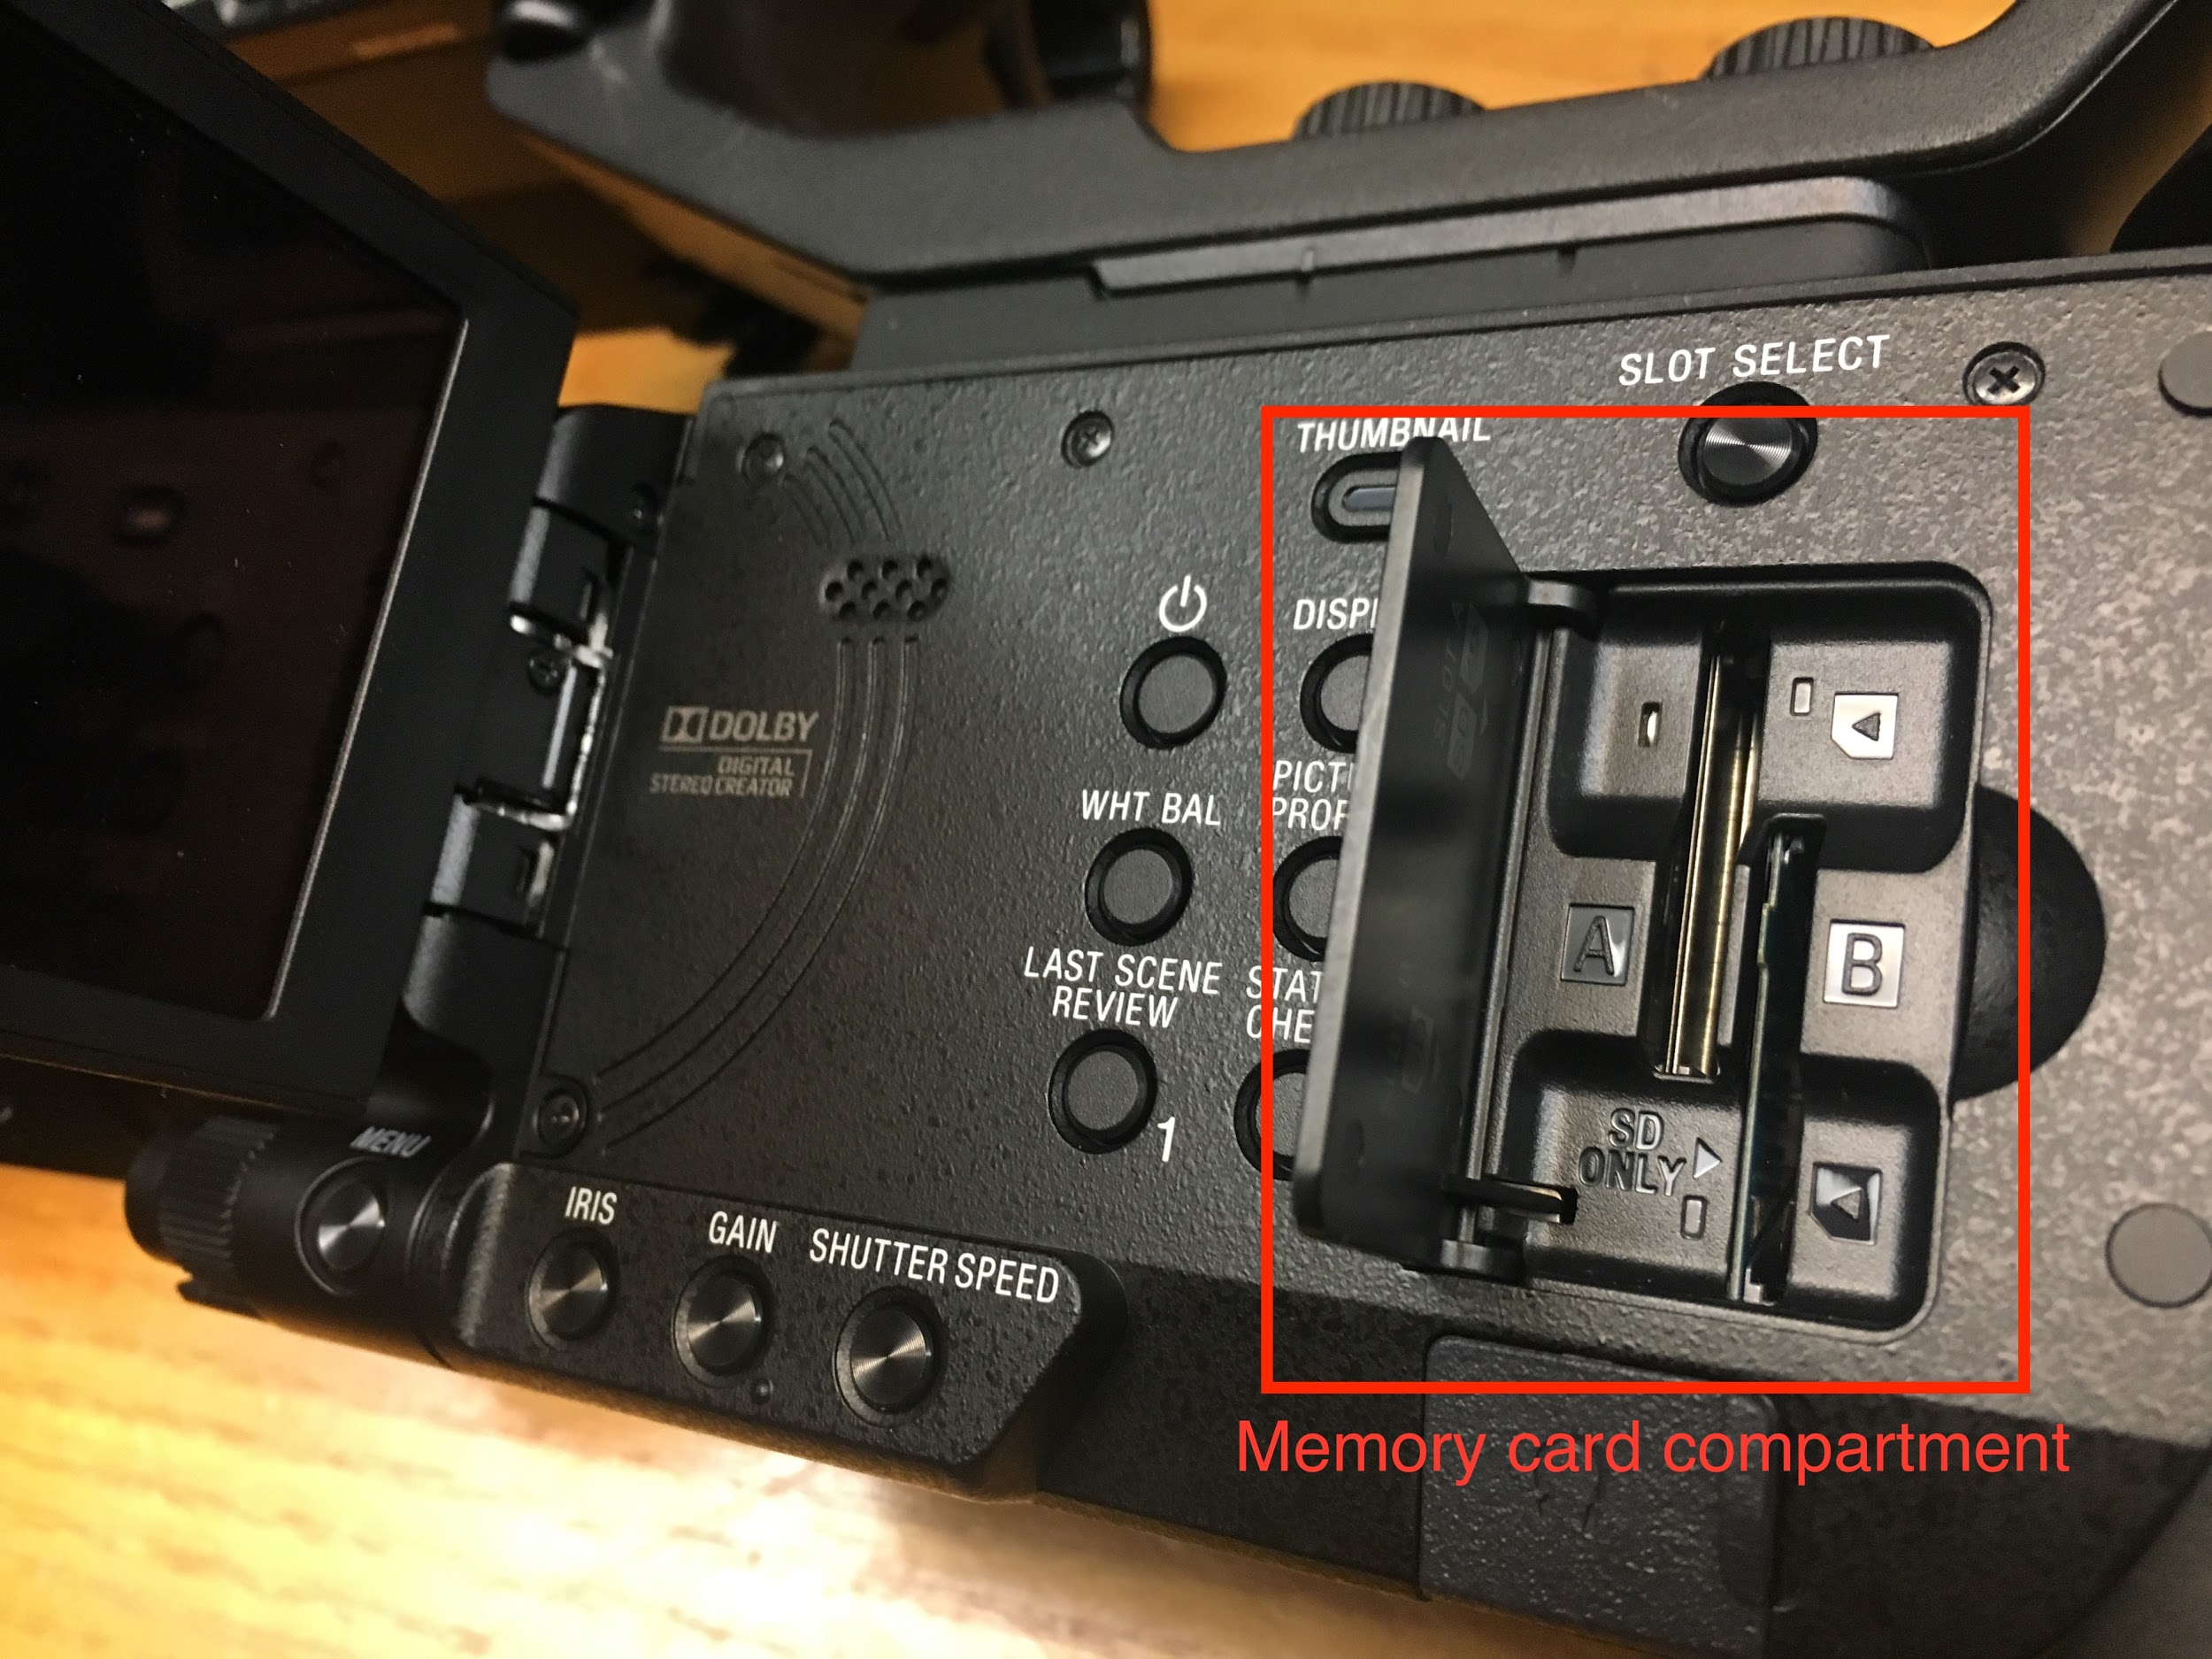 Image of camera component